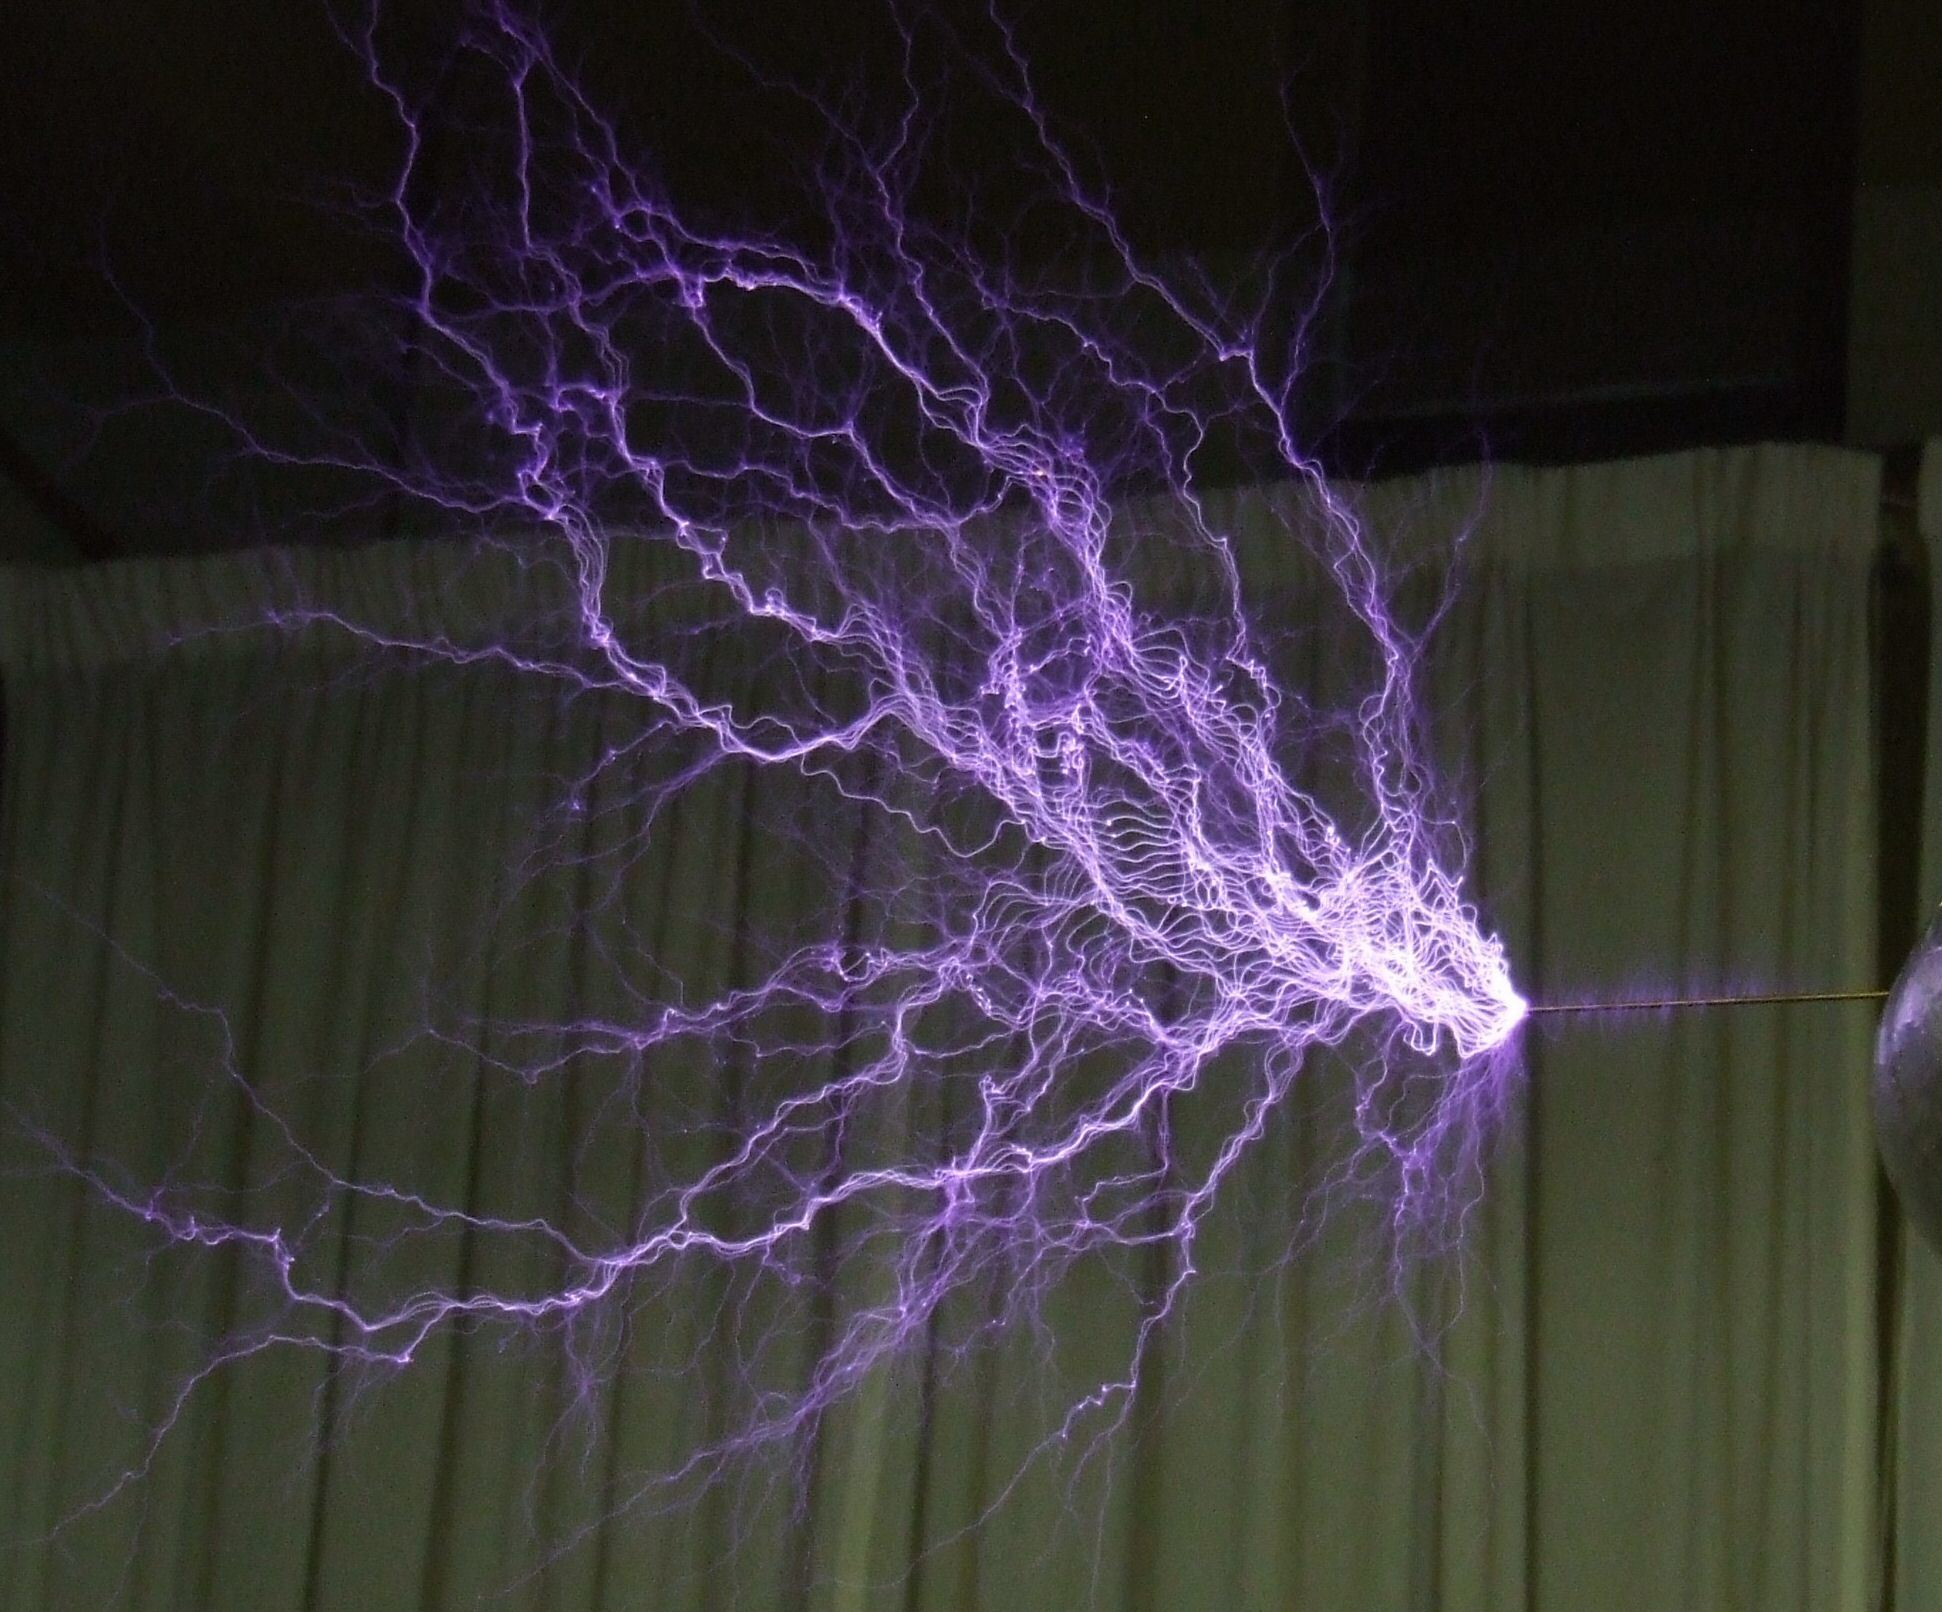 Tesla coil discharge any